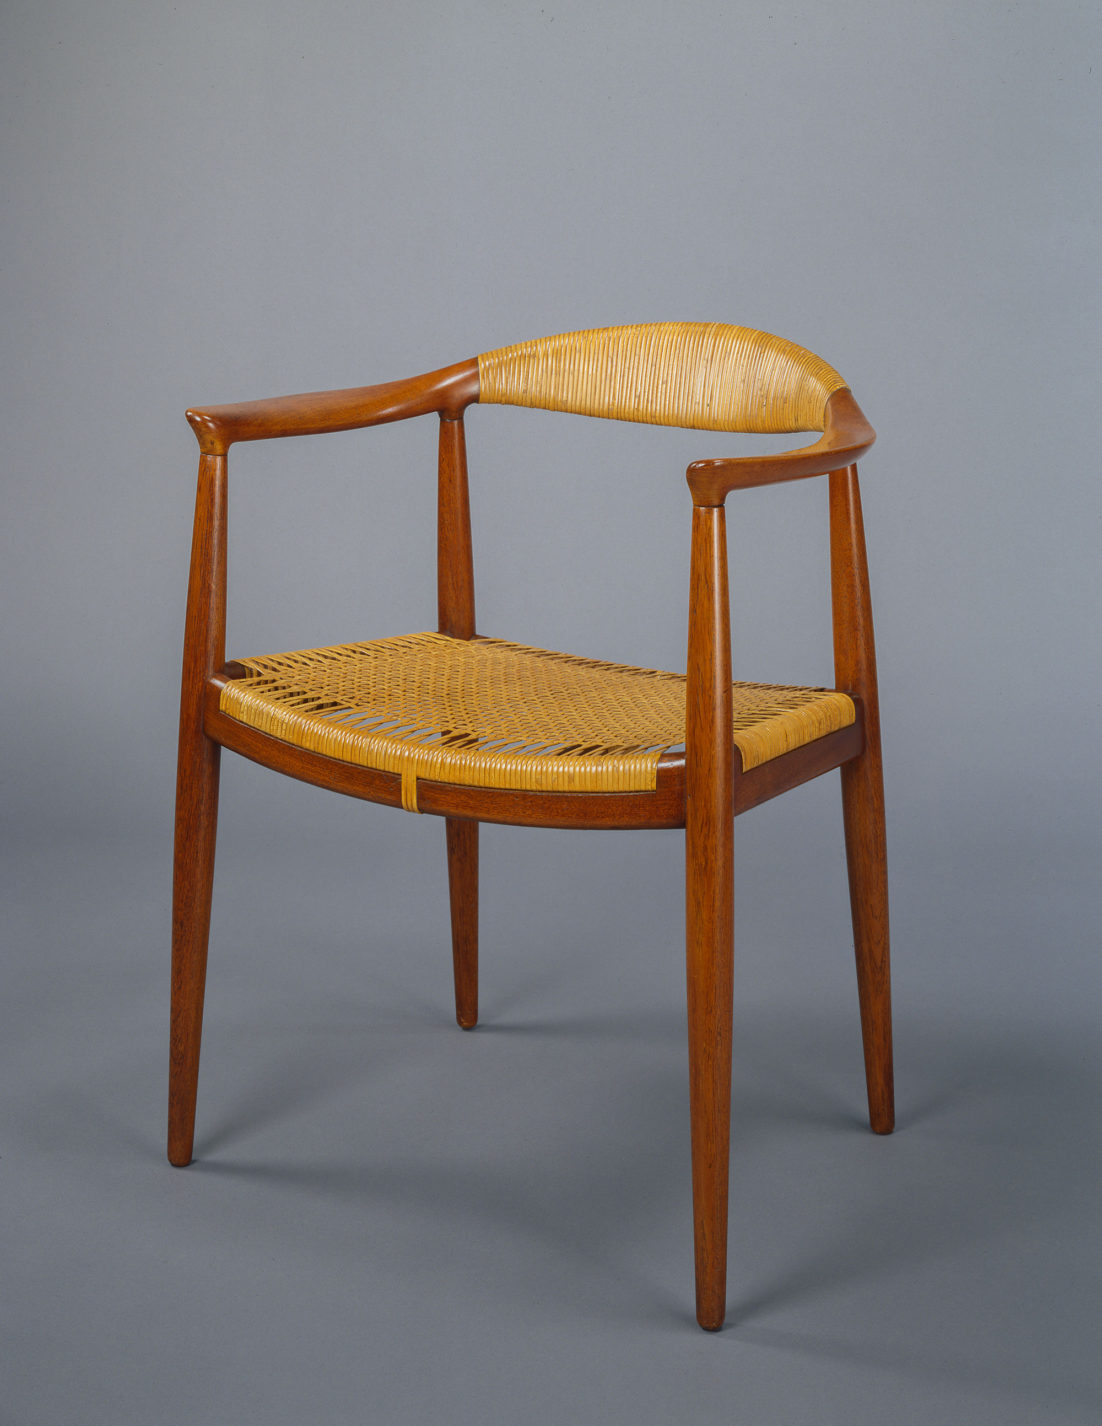 Wooden armchair with slender legs, a wrapped cane back, and a woven cane seat.